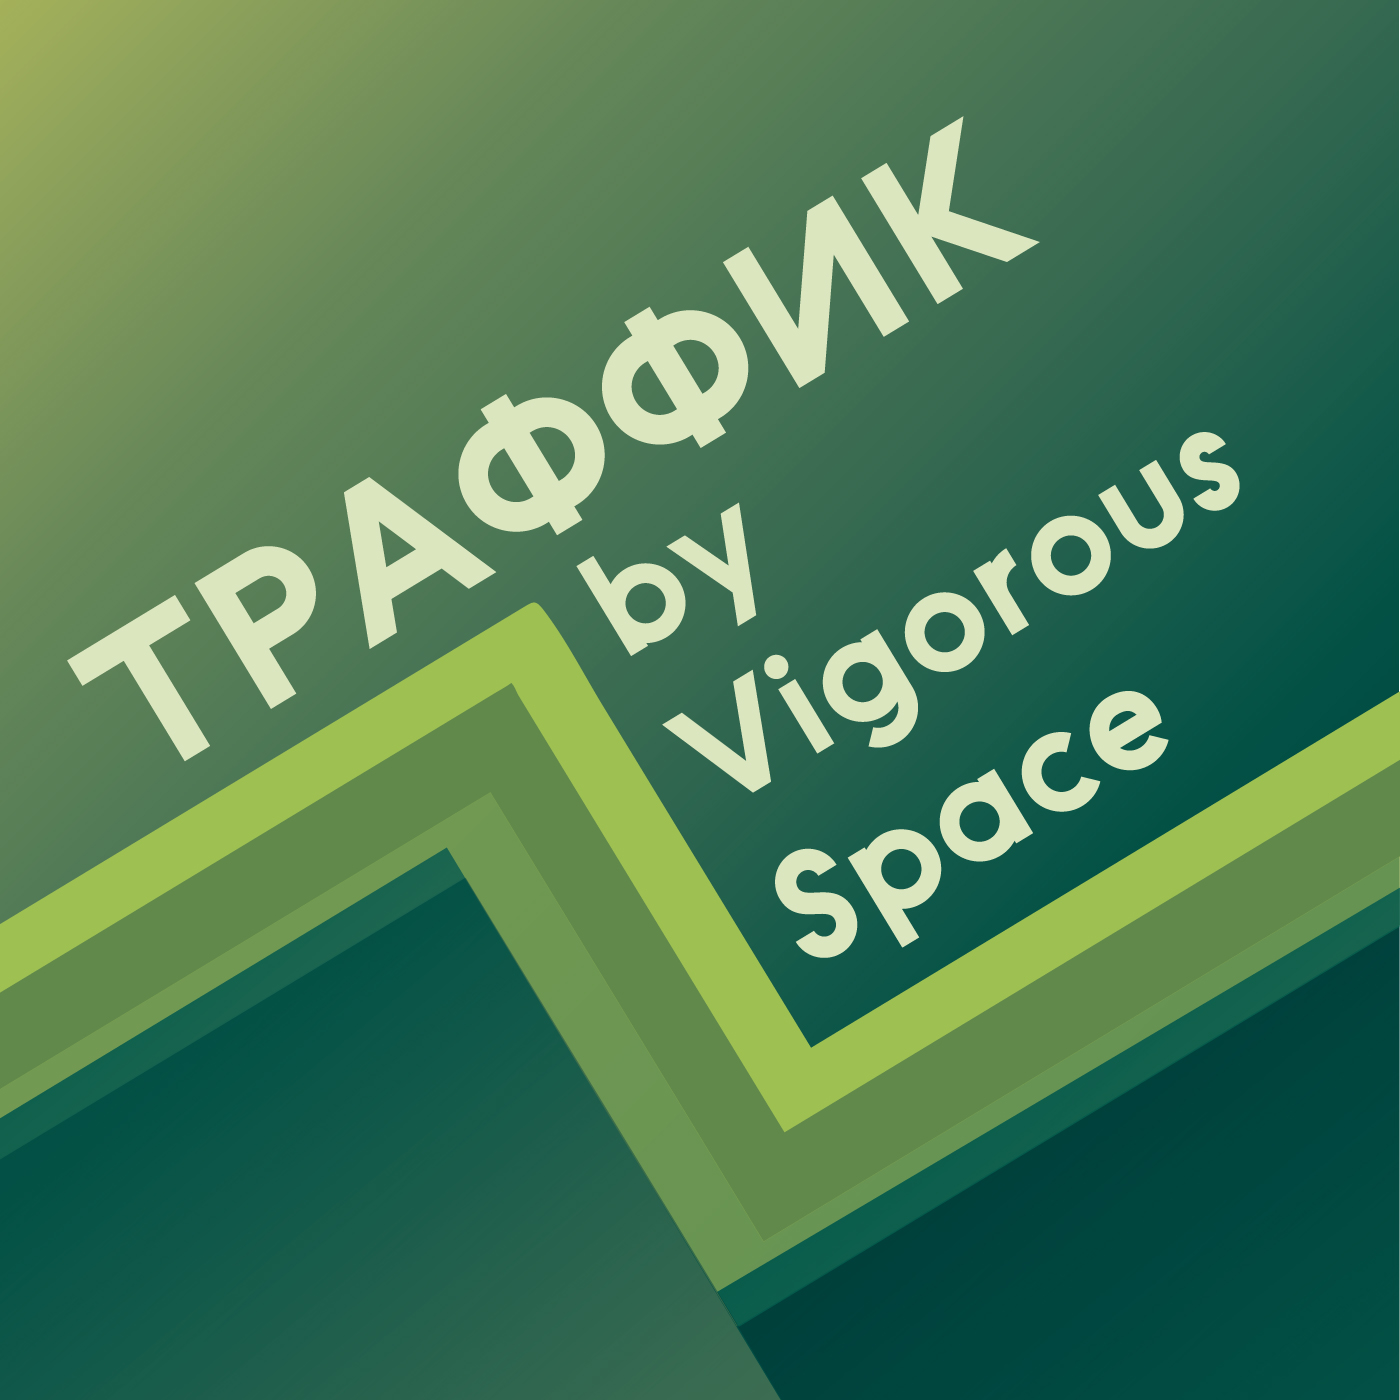 Траффик - Vigorous Space